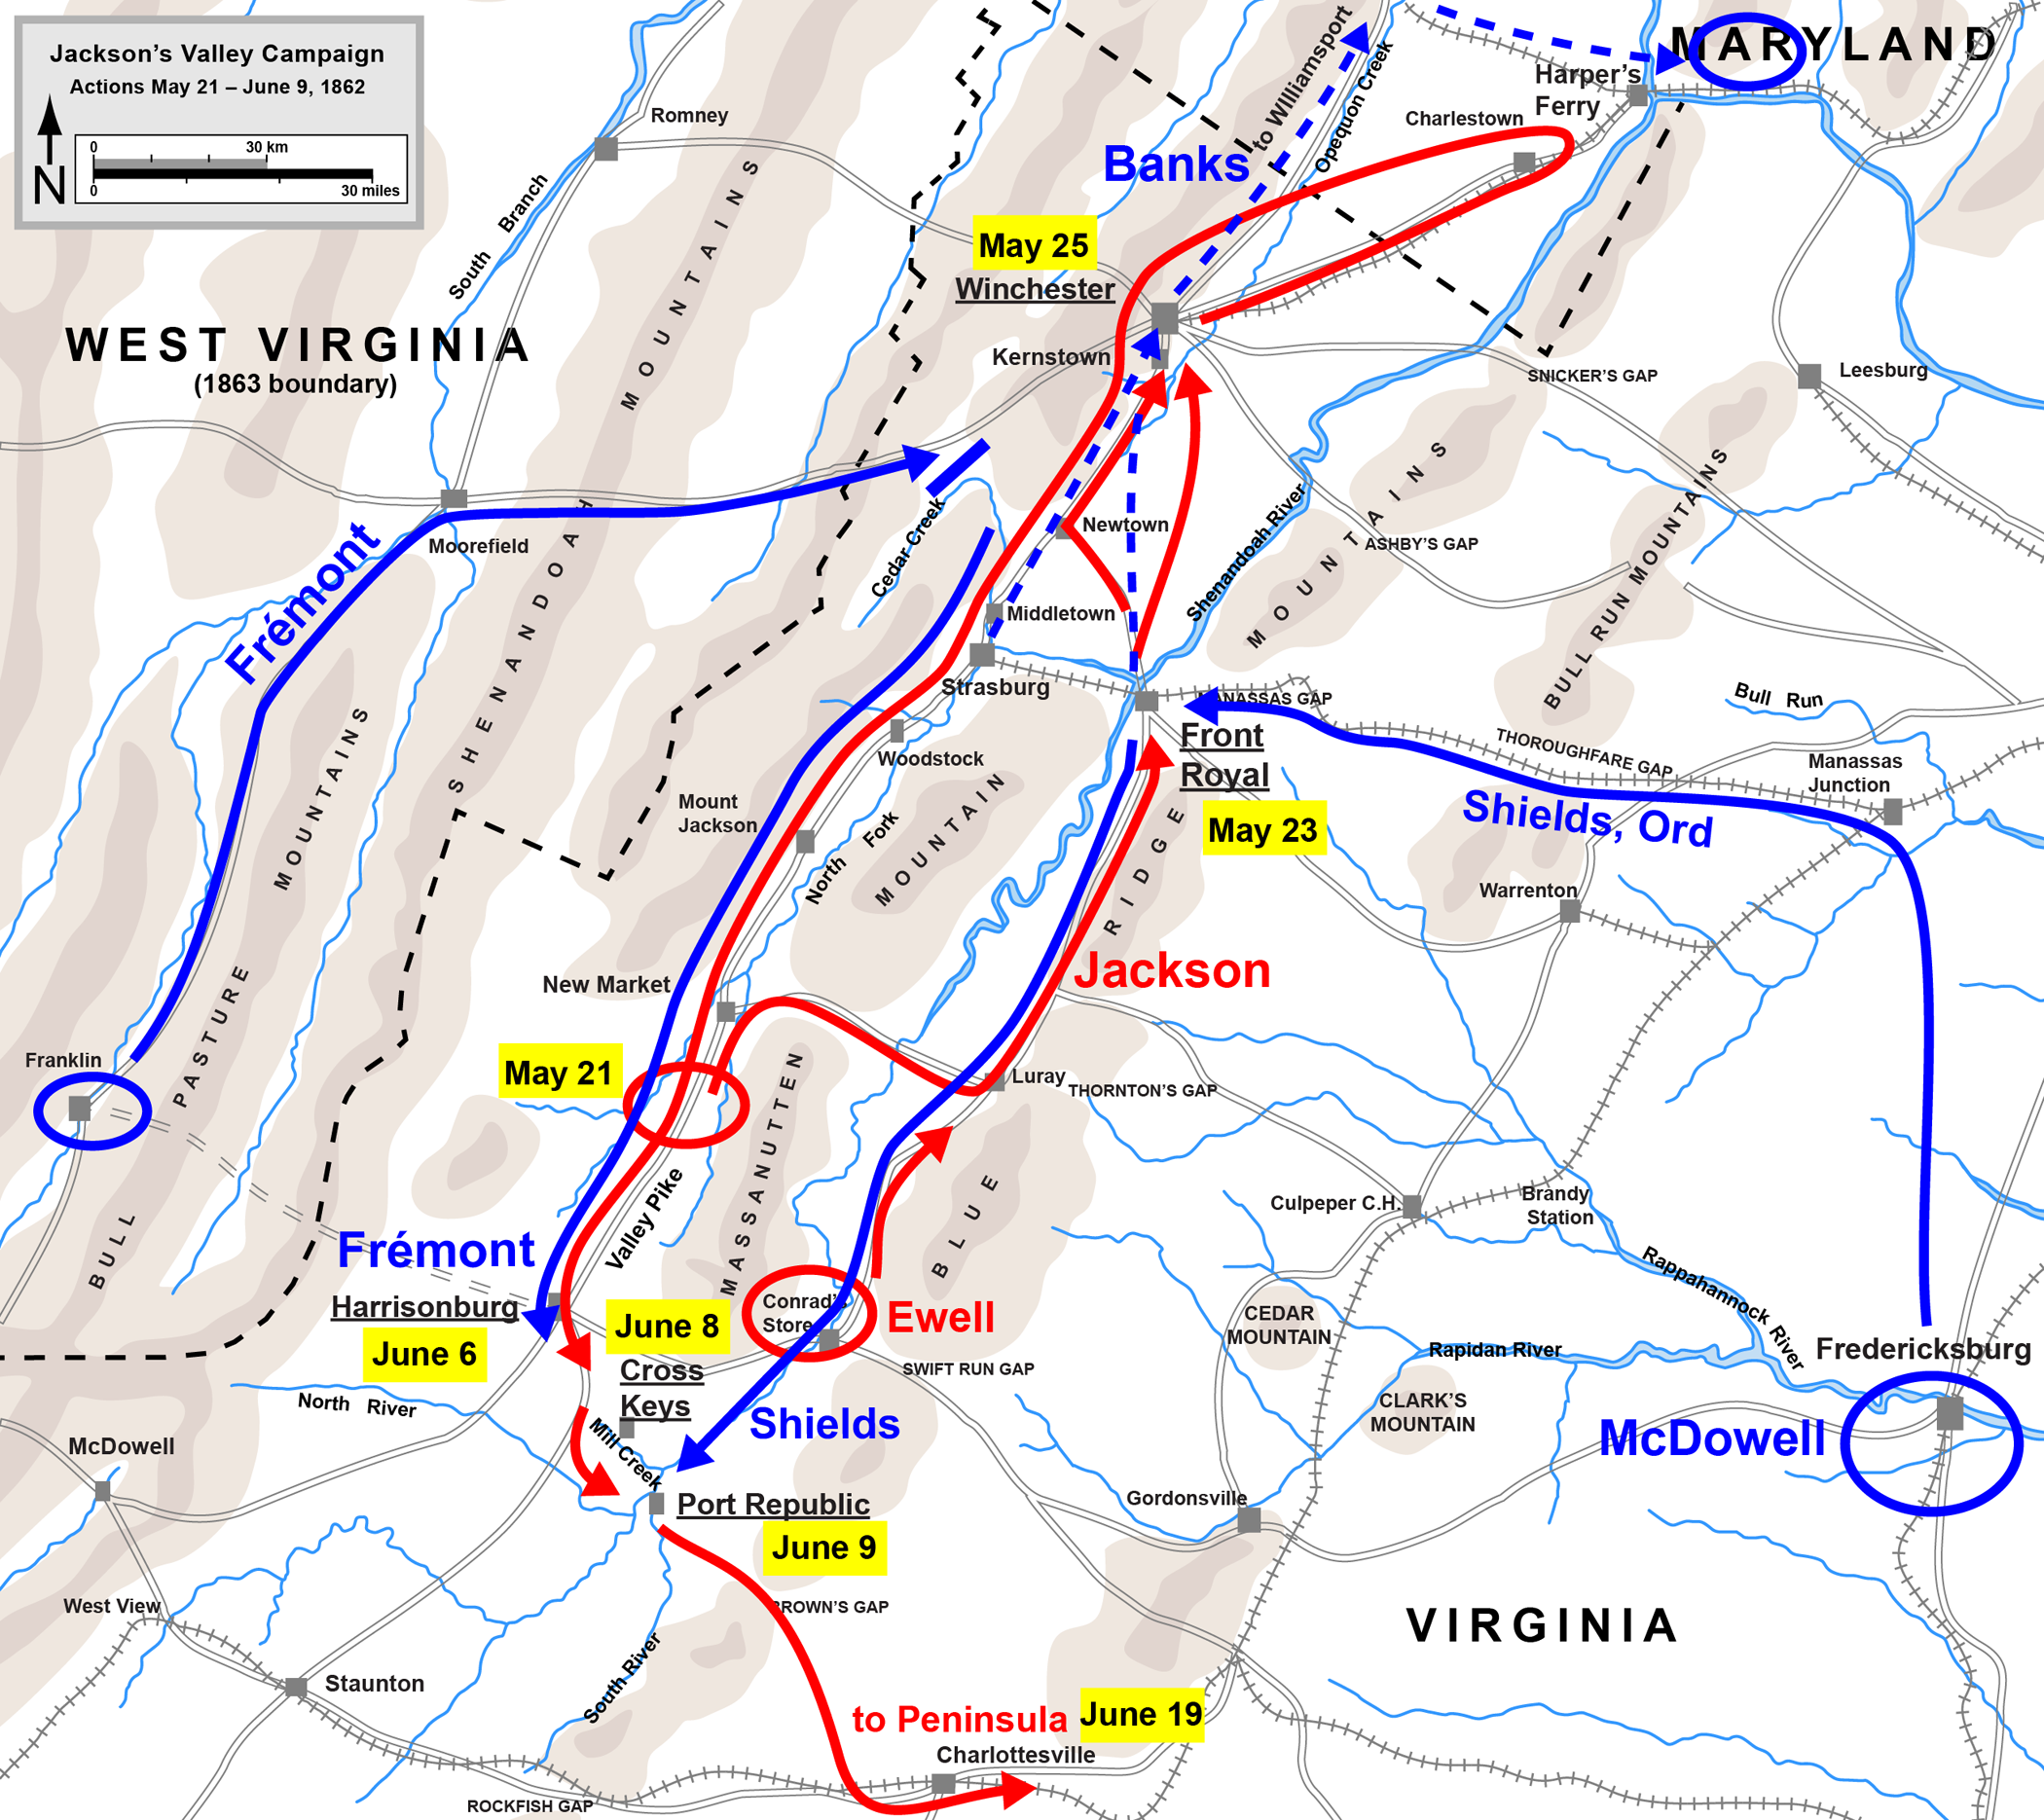 FileJackson Valley Campaign Part2png